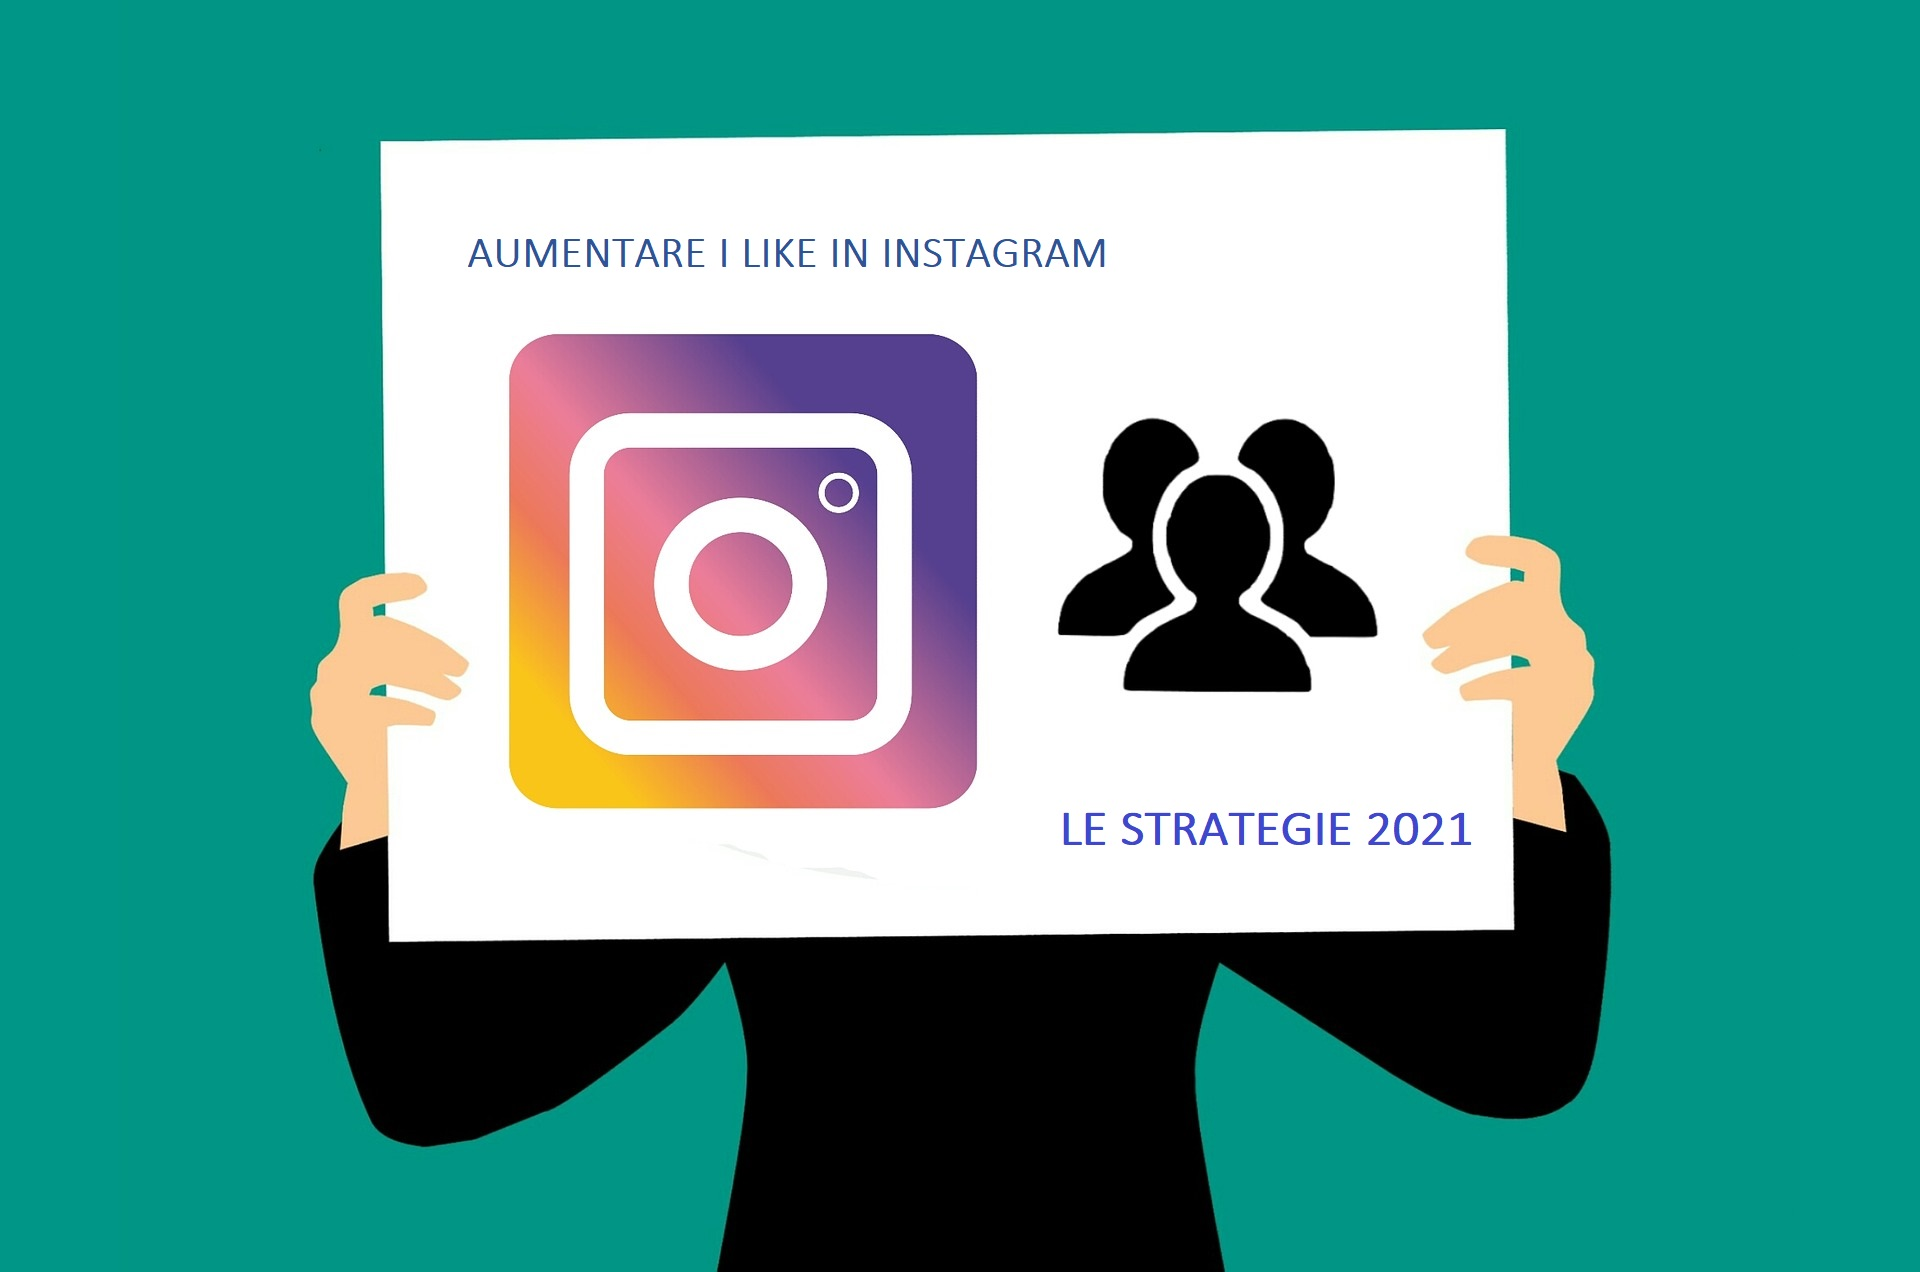 aumento like instagram 2021